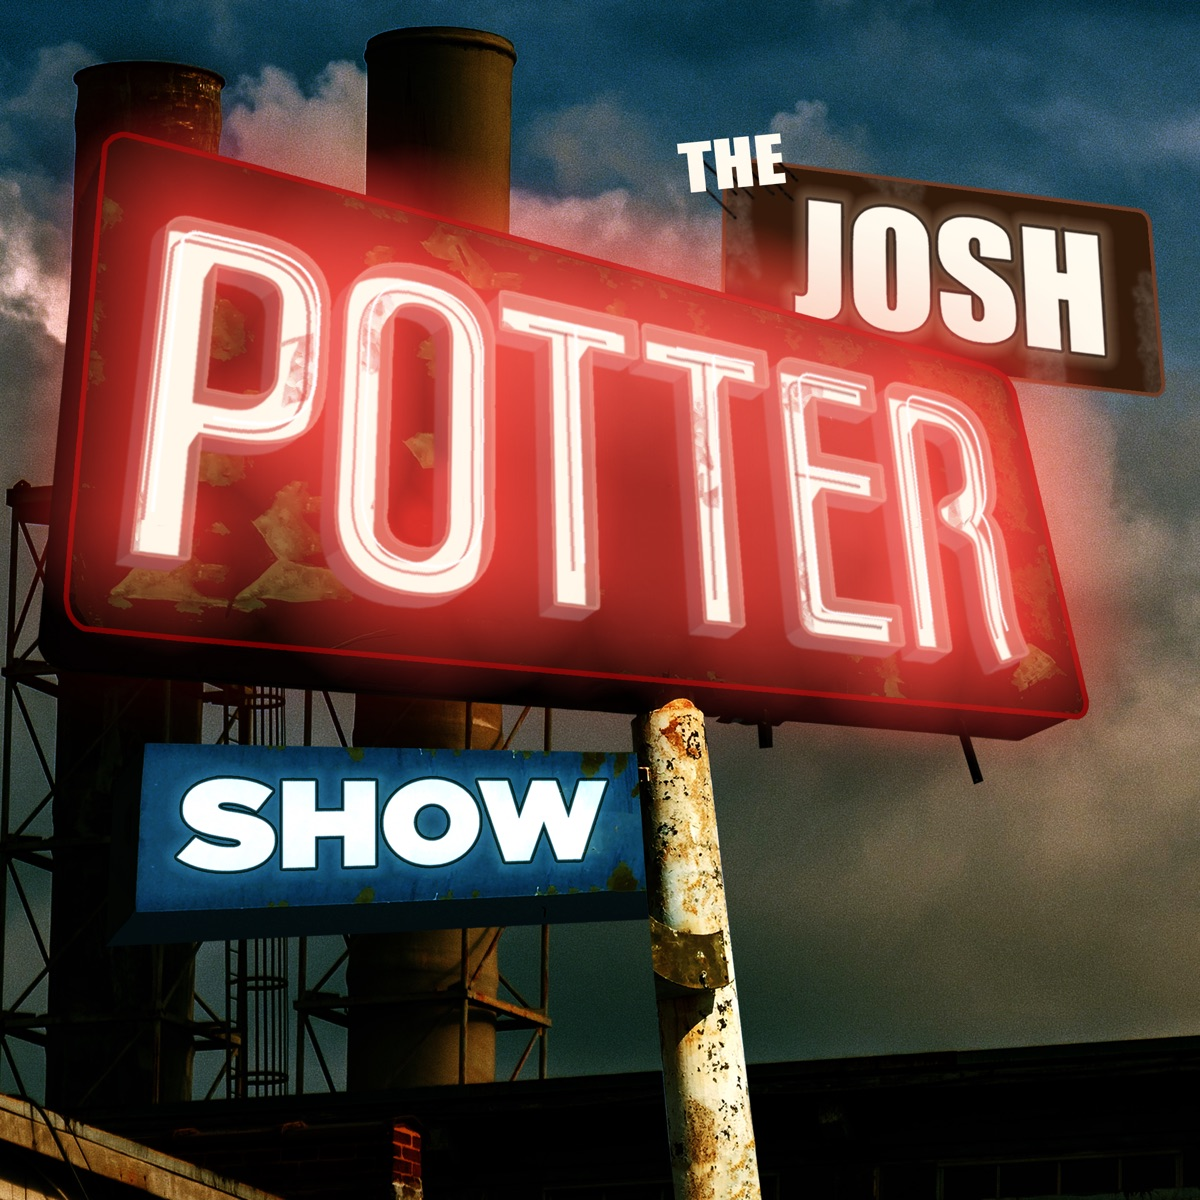 The Josh Potter Show Podcast Podtail Home concerts sports theater broadway city guide testimonials hot events faq's. the josh potter show podcast podtail